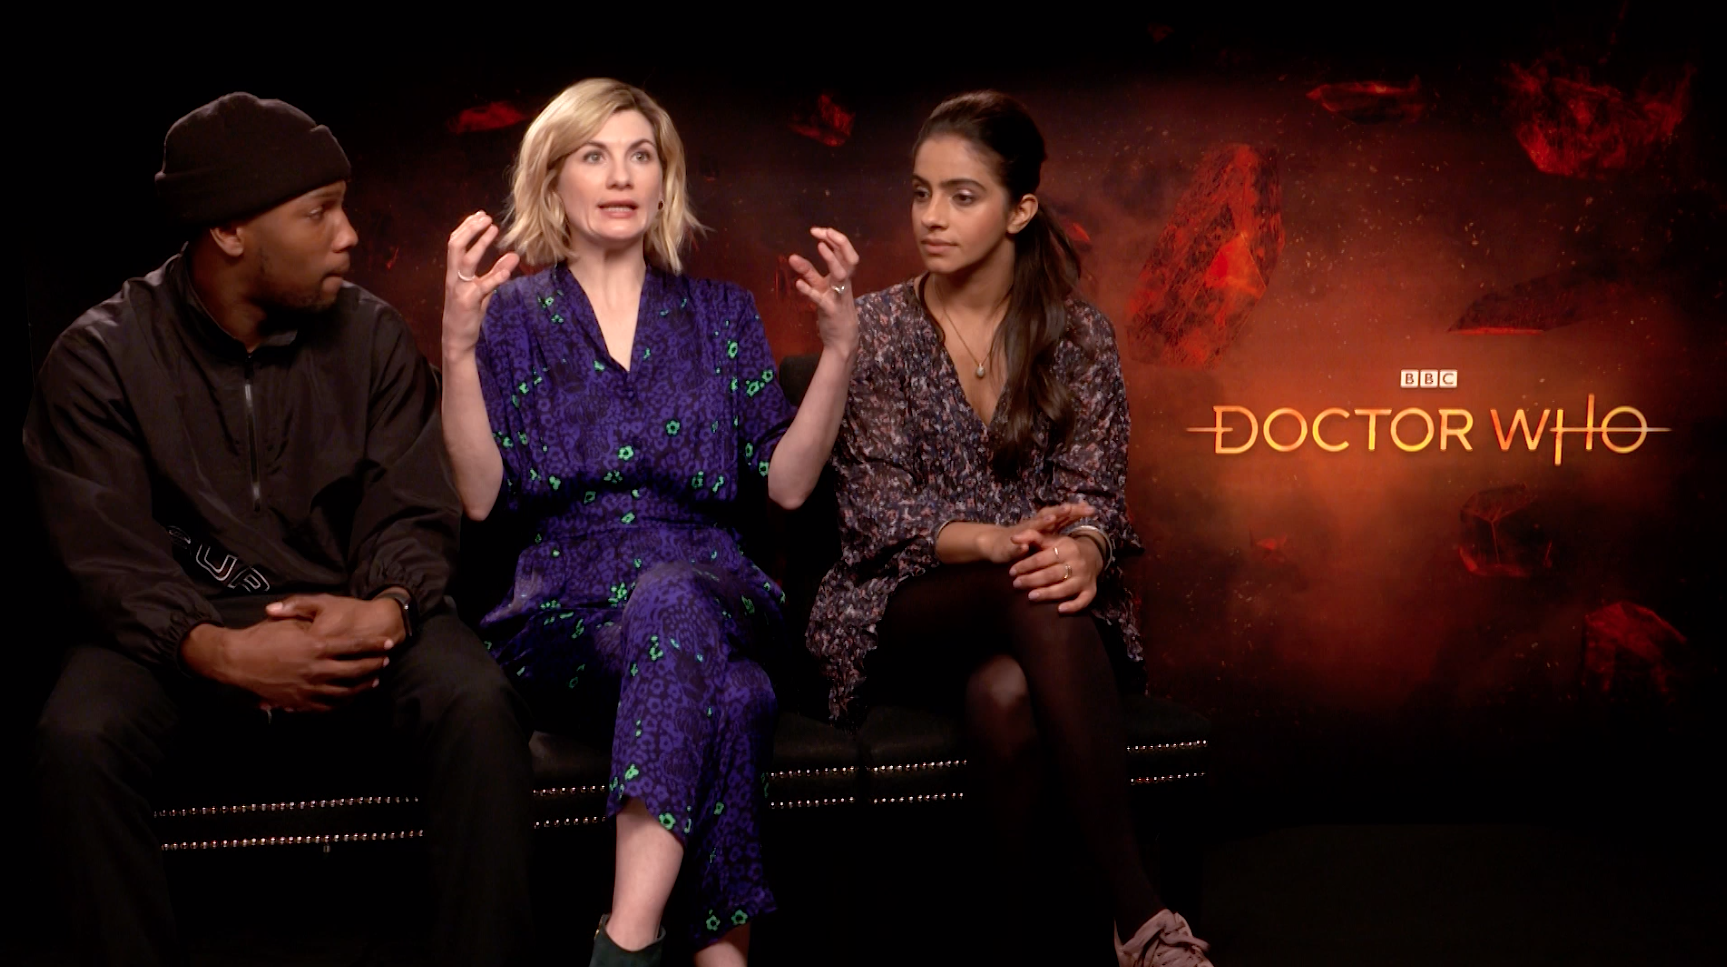 Tosin Cole, Jodie Whittaker and Mandip Gill tease what fans can expect to see in the latest season of the long-running sci-fi series. Doctor Who returns in 2020 on New Year's Day.